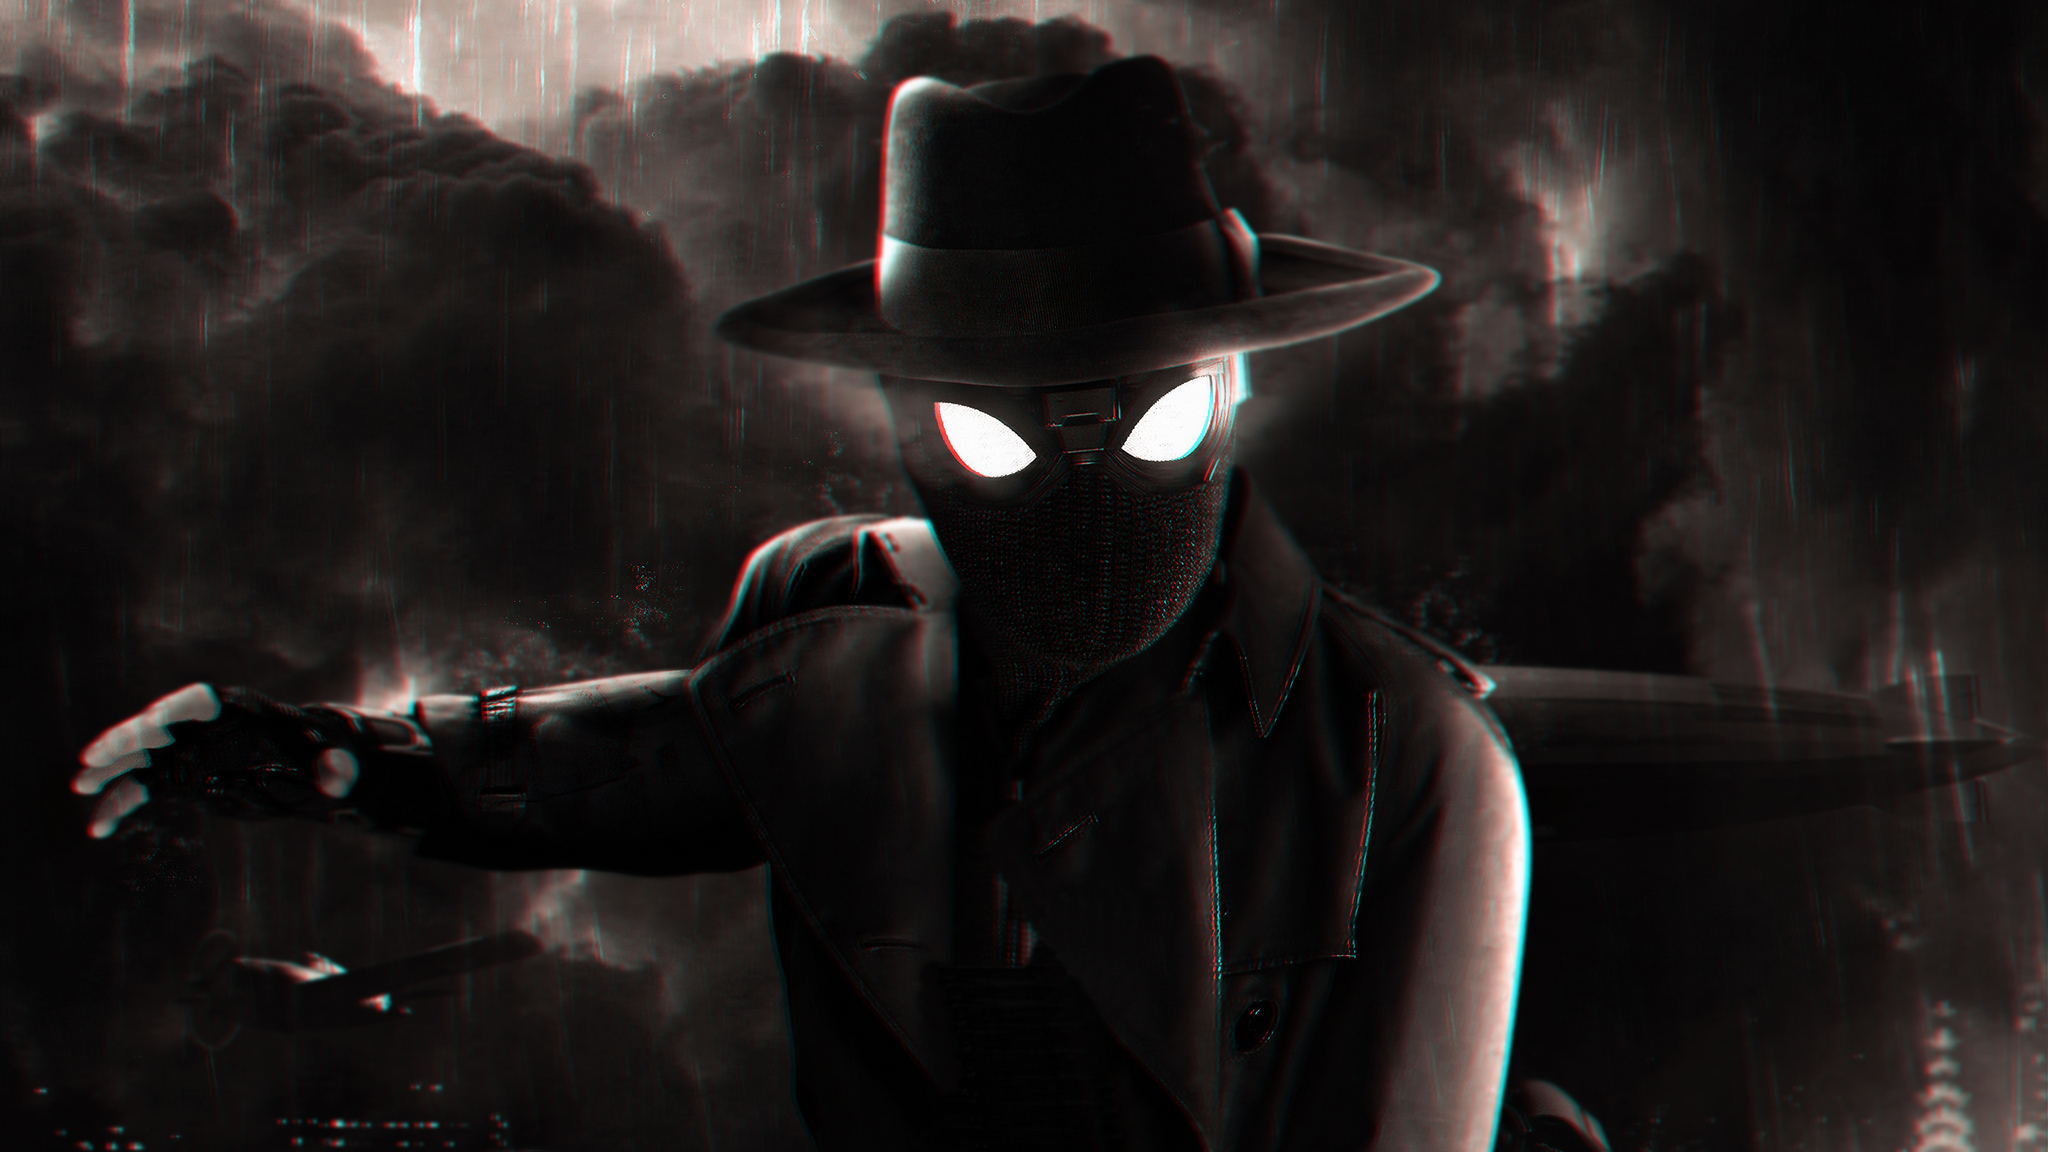 2048x1152 Spiderman Noir 2048x1152 Resolution Hd 4k